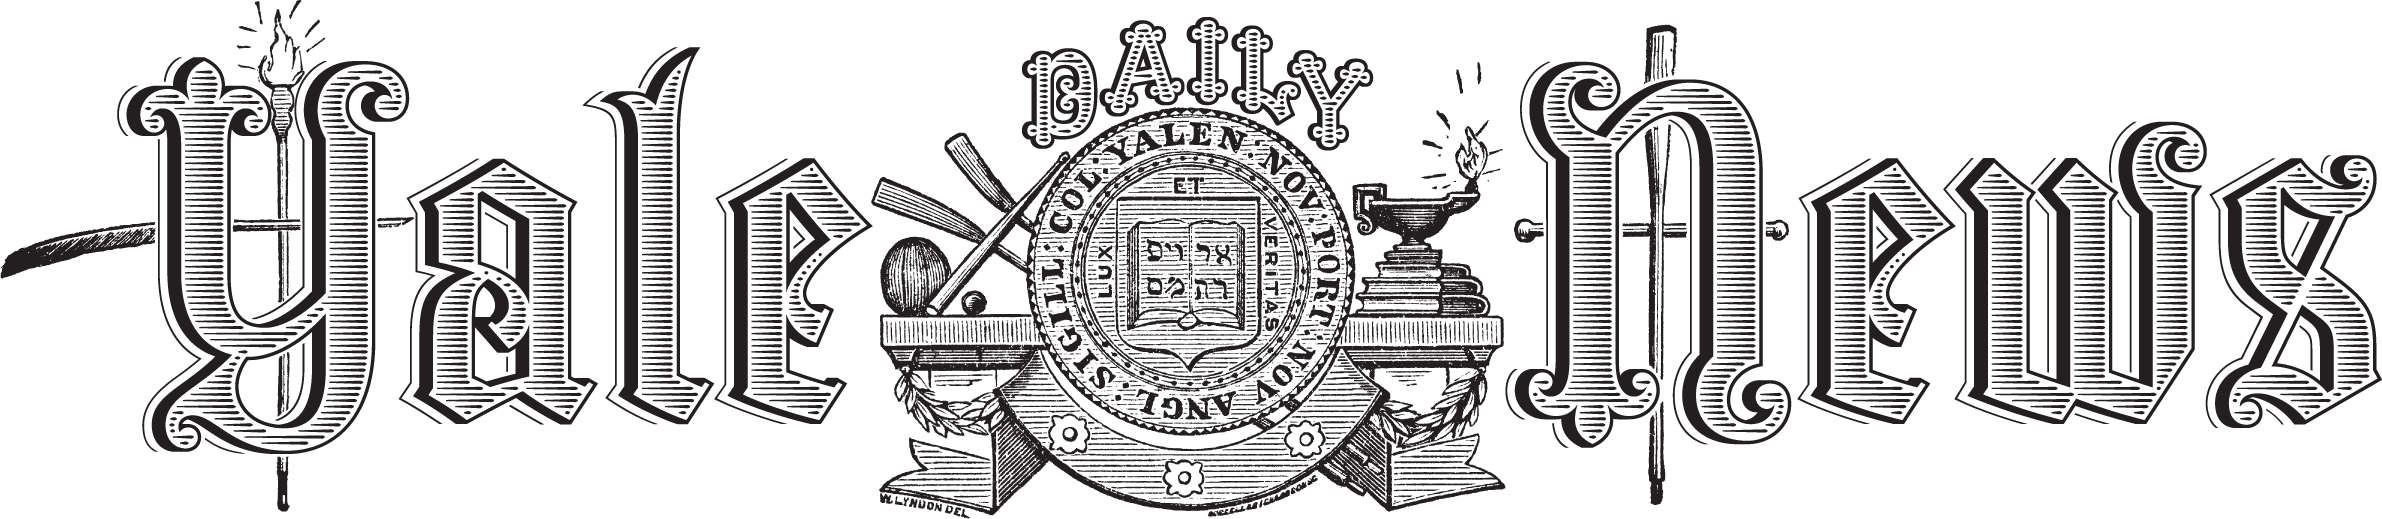 Newspaper clipart daily news. Nonprofit law prof blog